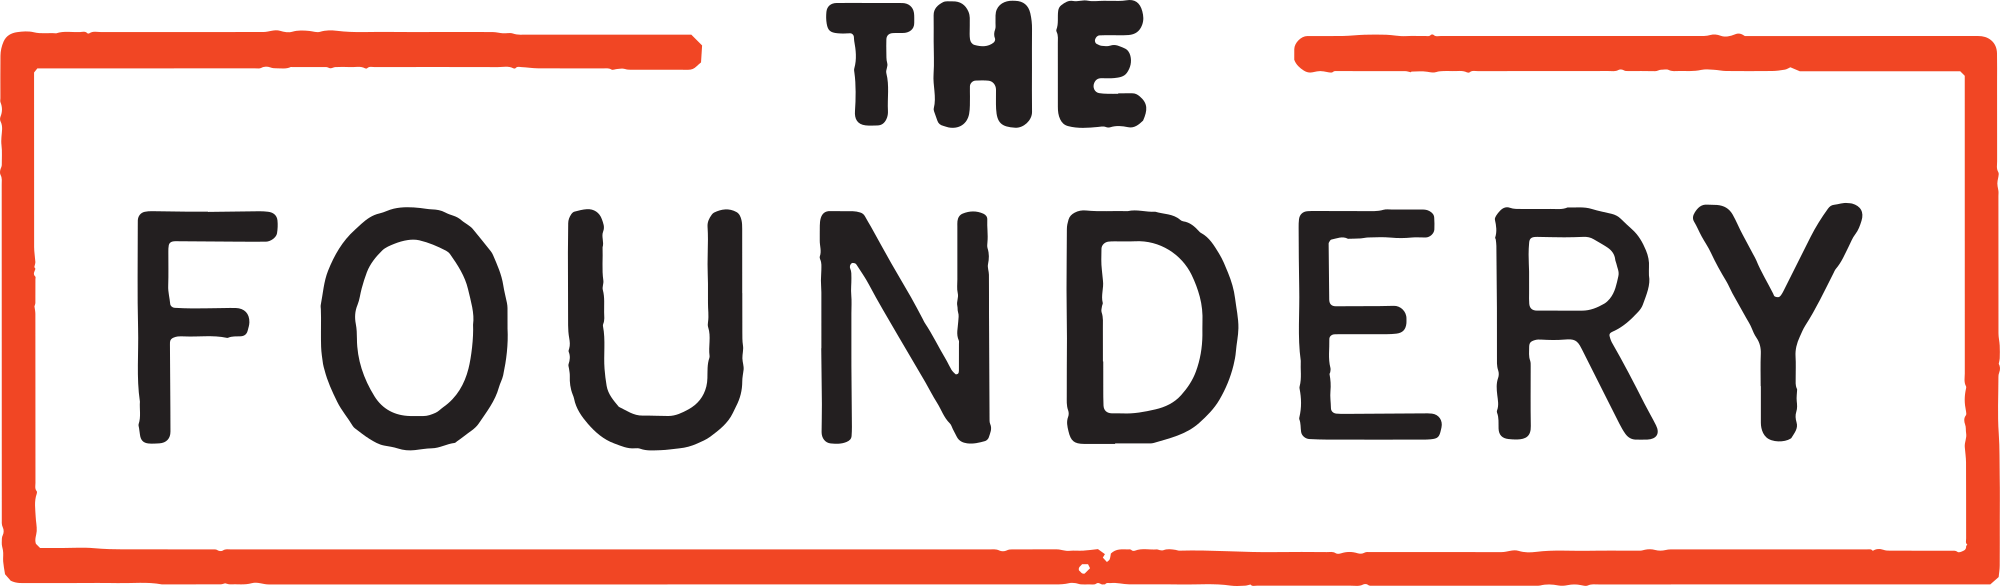 Foundery_Logo_2000px.png